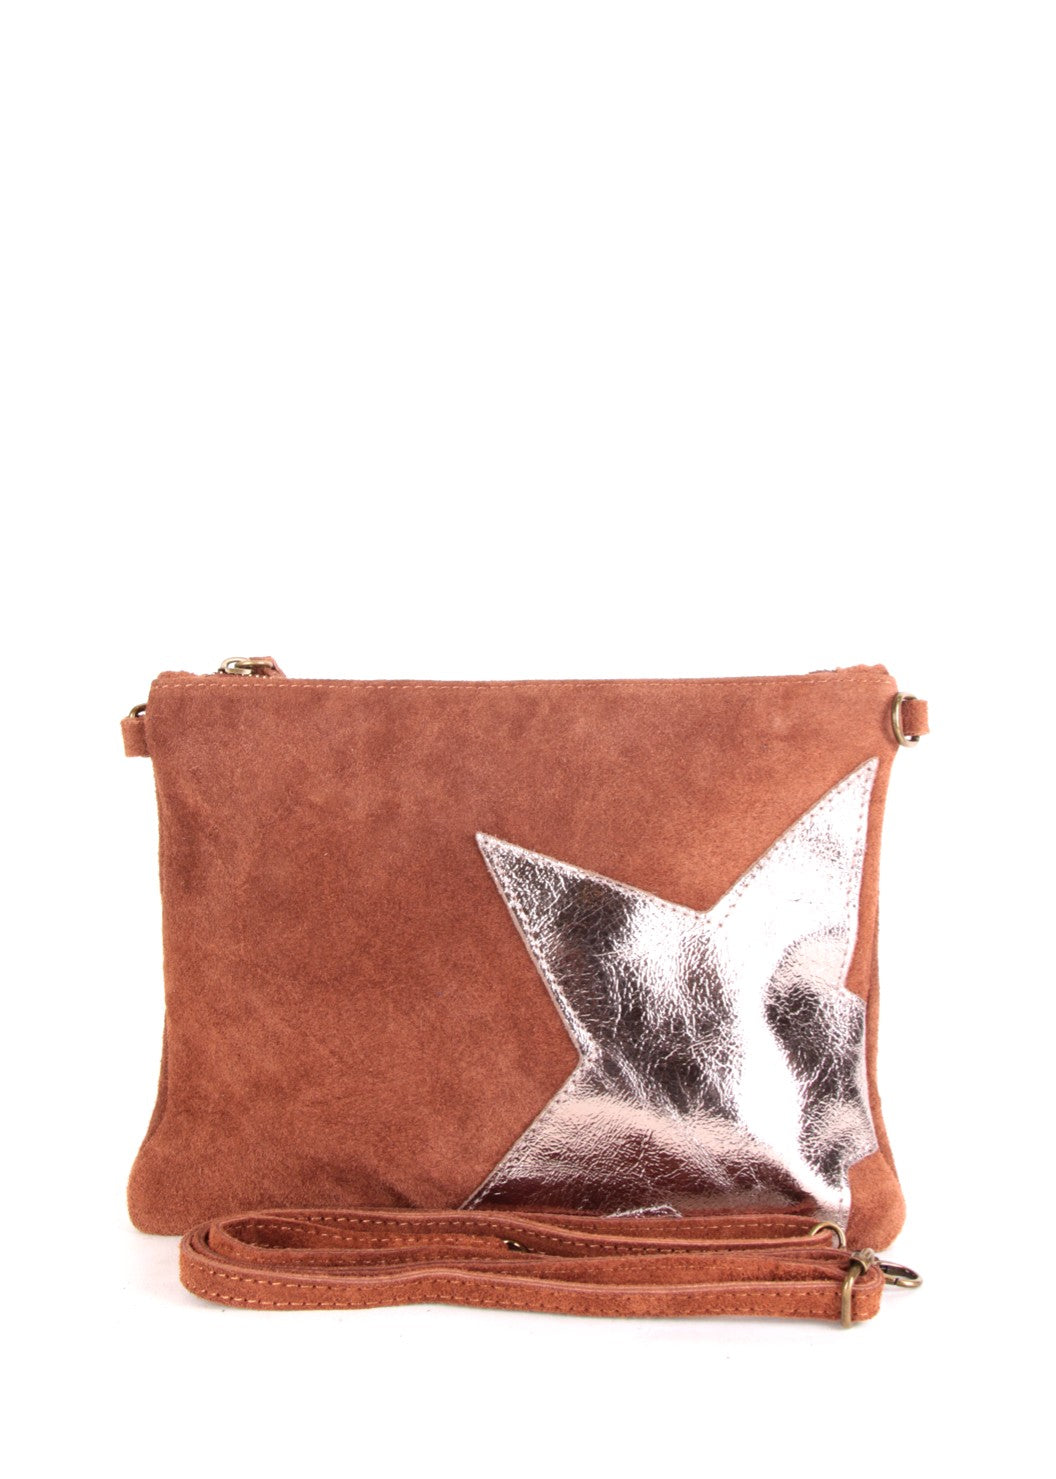 STELLA - Suede Leather Star Bag - Tan